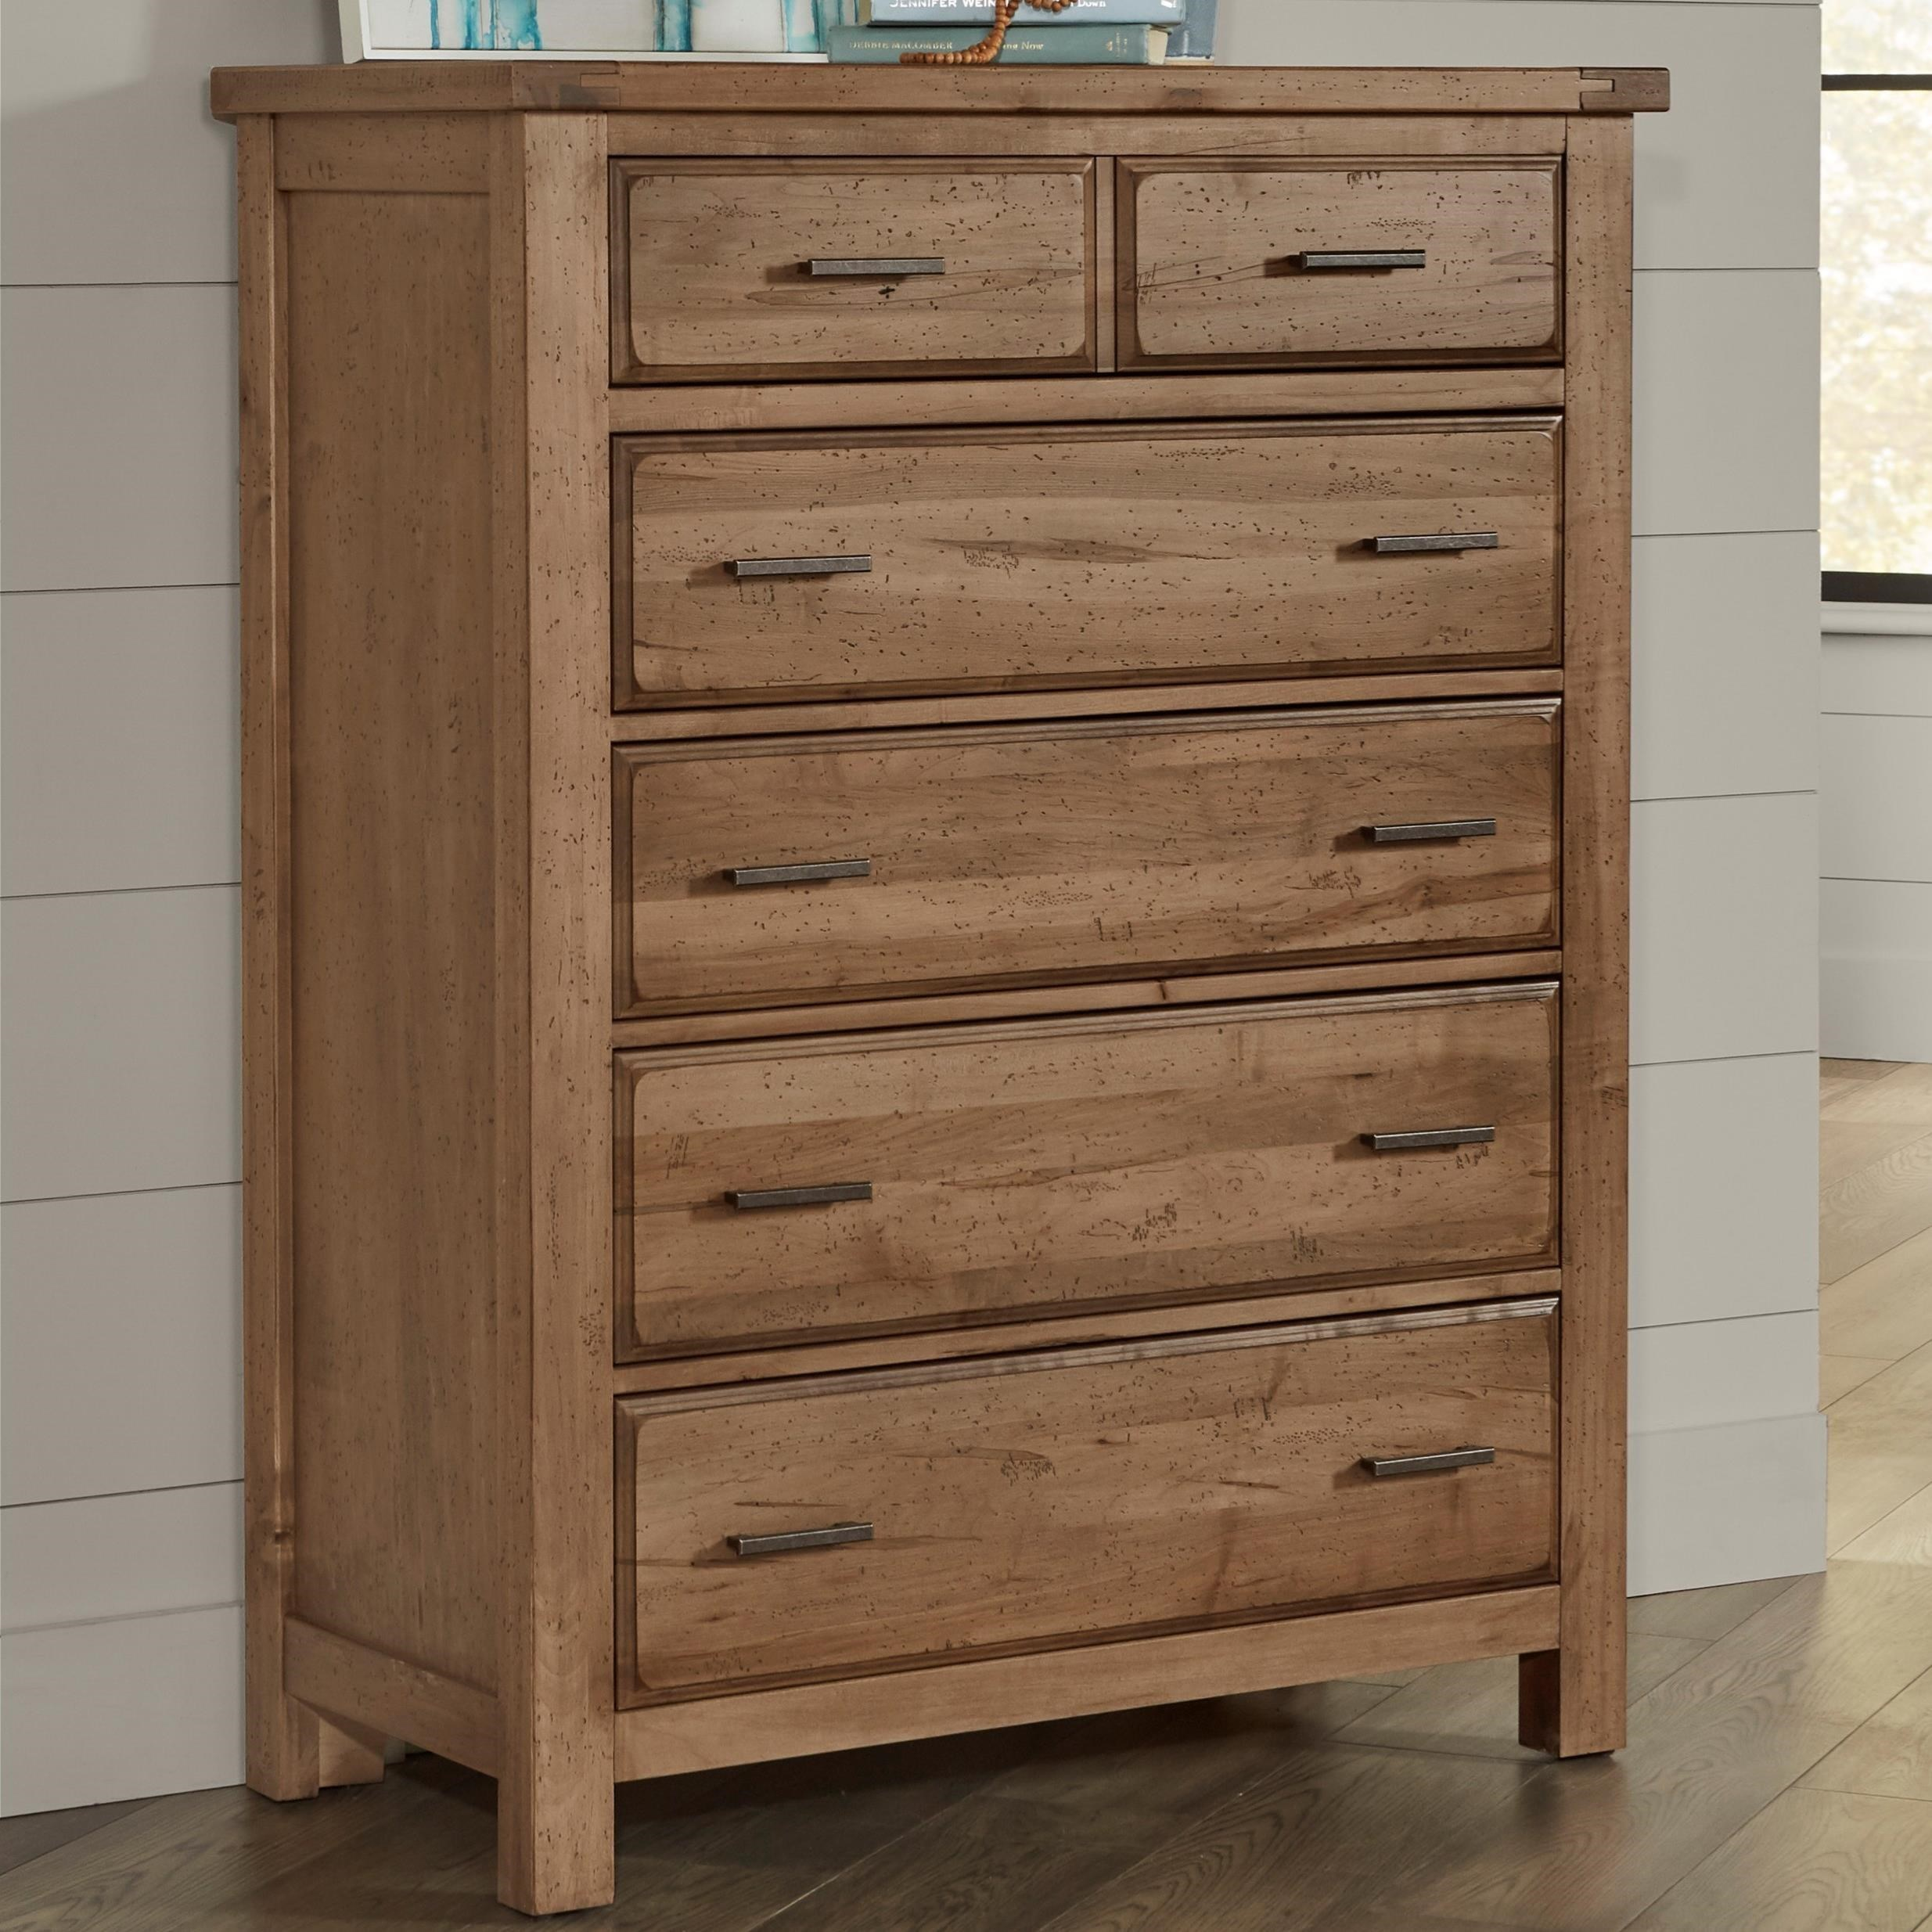 Chestnut Creek 5-Drawer Chest by Centennial Solids at Rooms and Rest